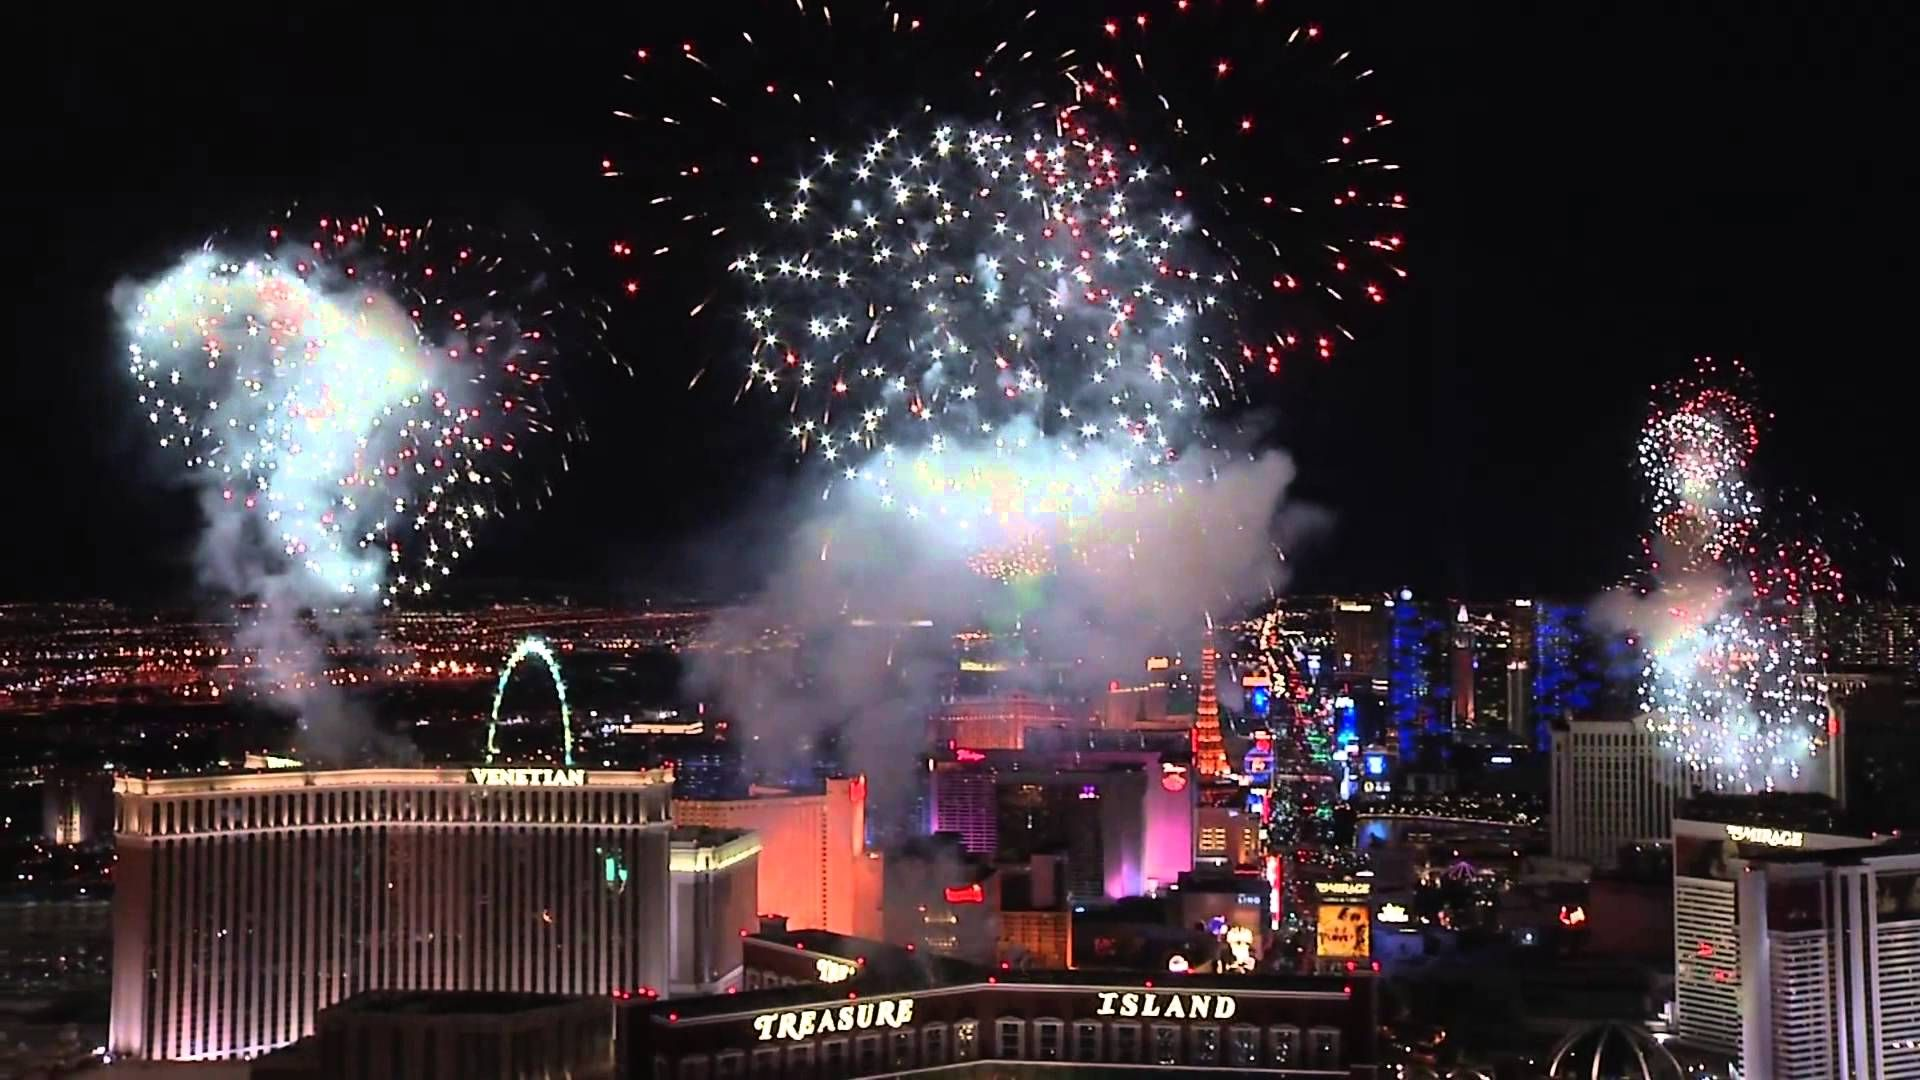 2015 New Year's Eve Fireworks at Las Vegas (With images